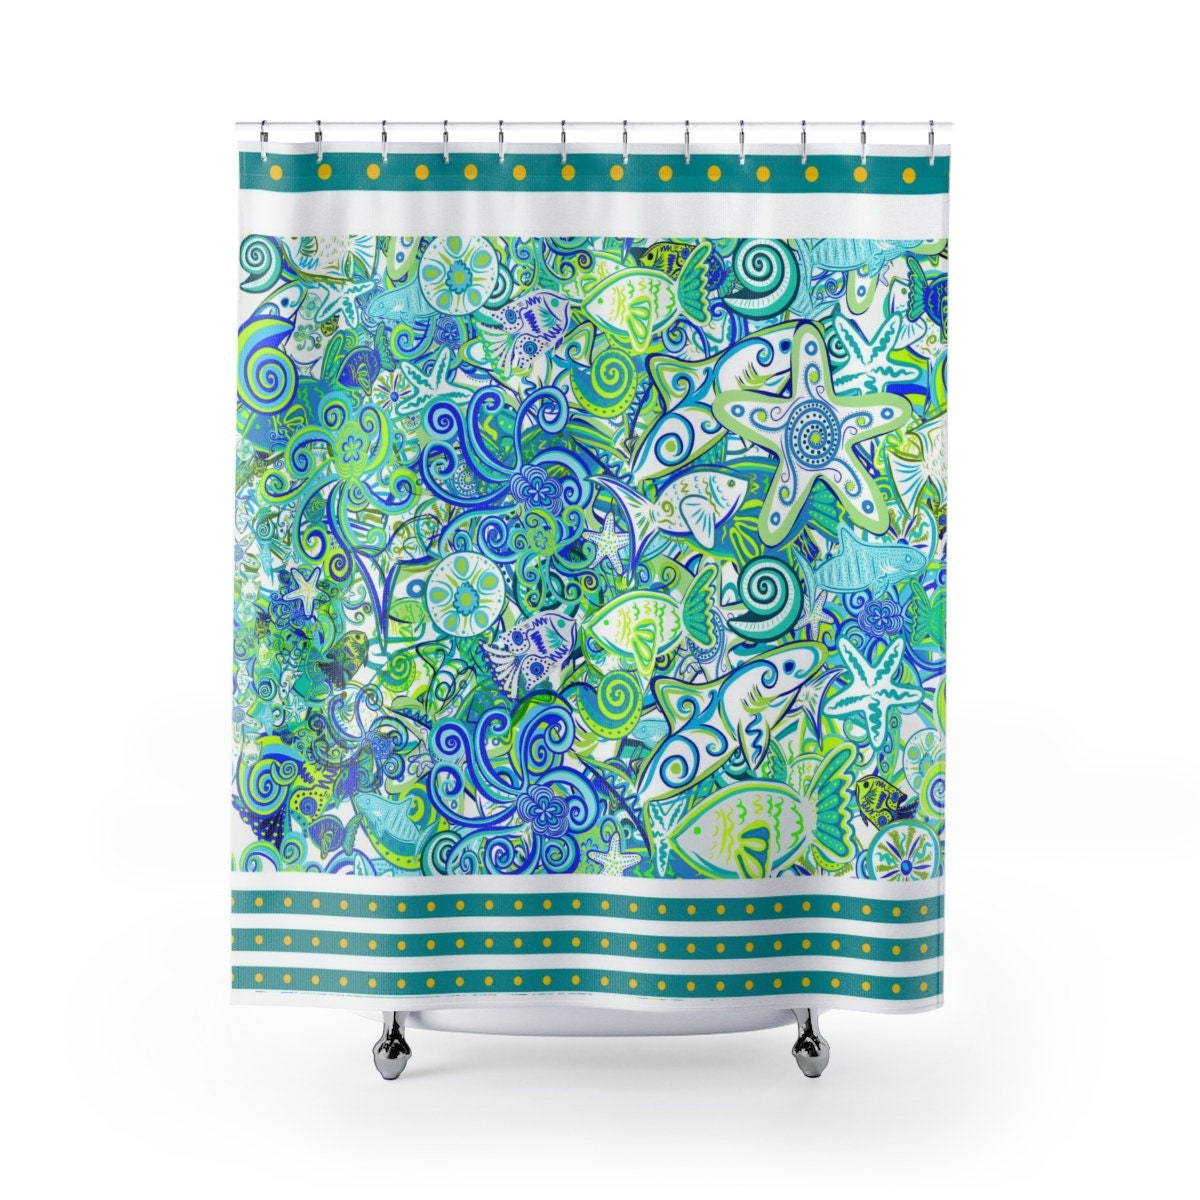 Fish Shower Curtain Nautical Scene Angel Fish Sharks Jellyfish Starfish Sea Snails Underwater Teal Green Turquoise Aqua